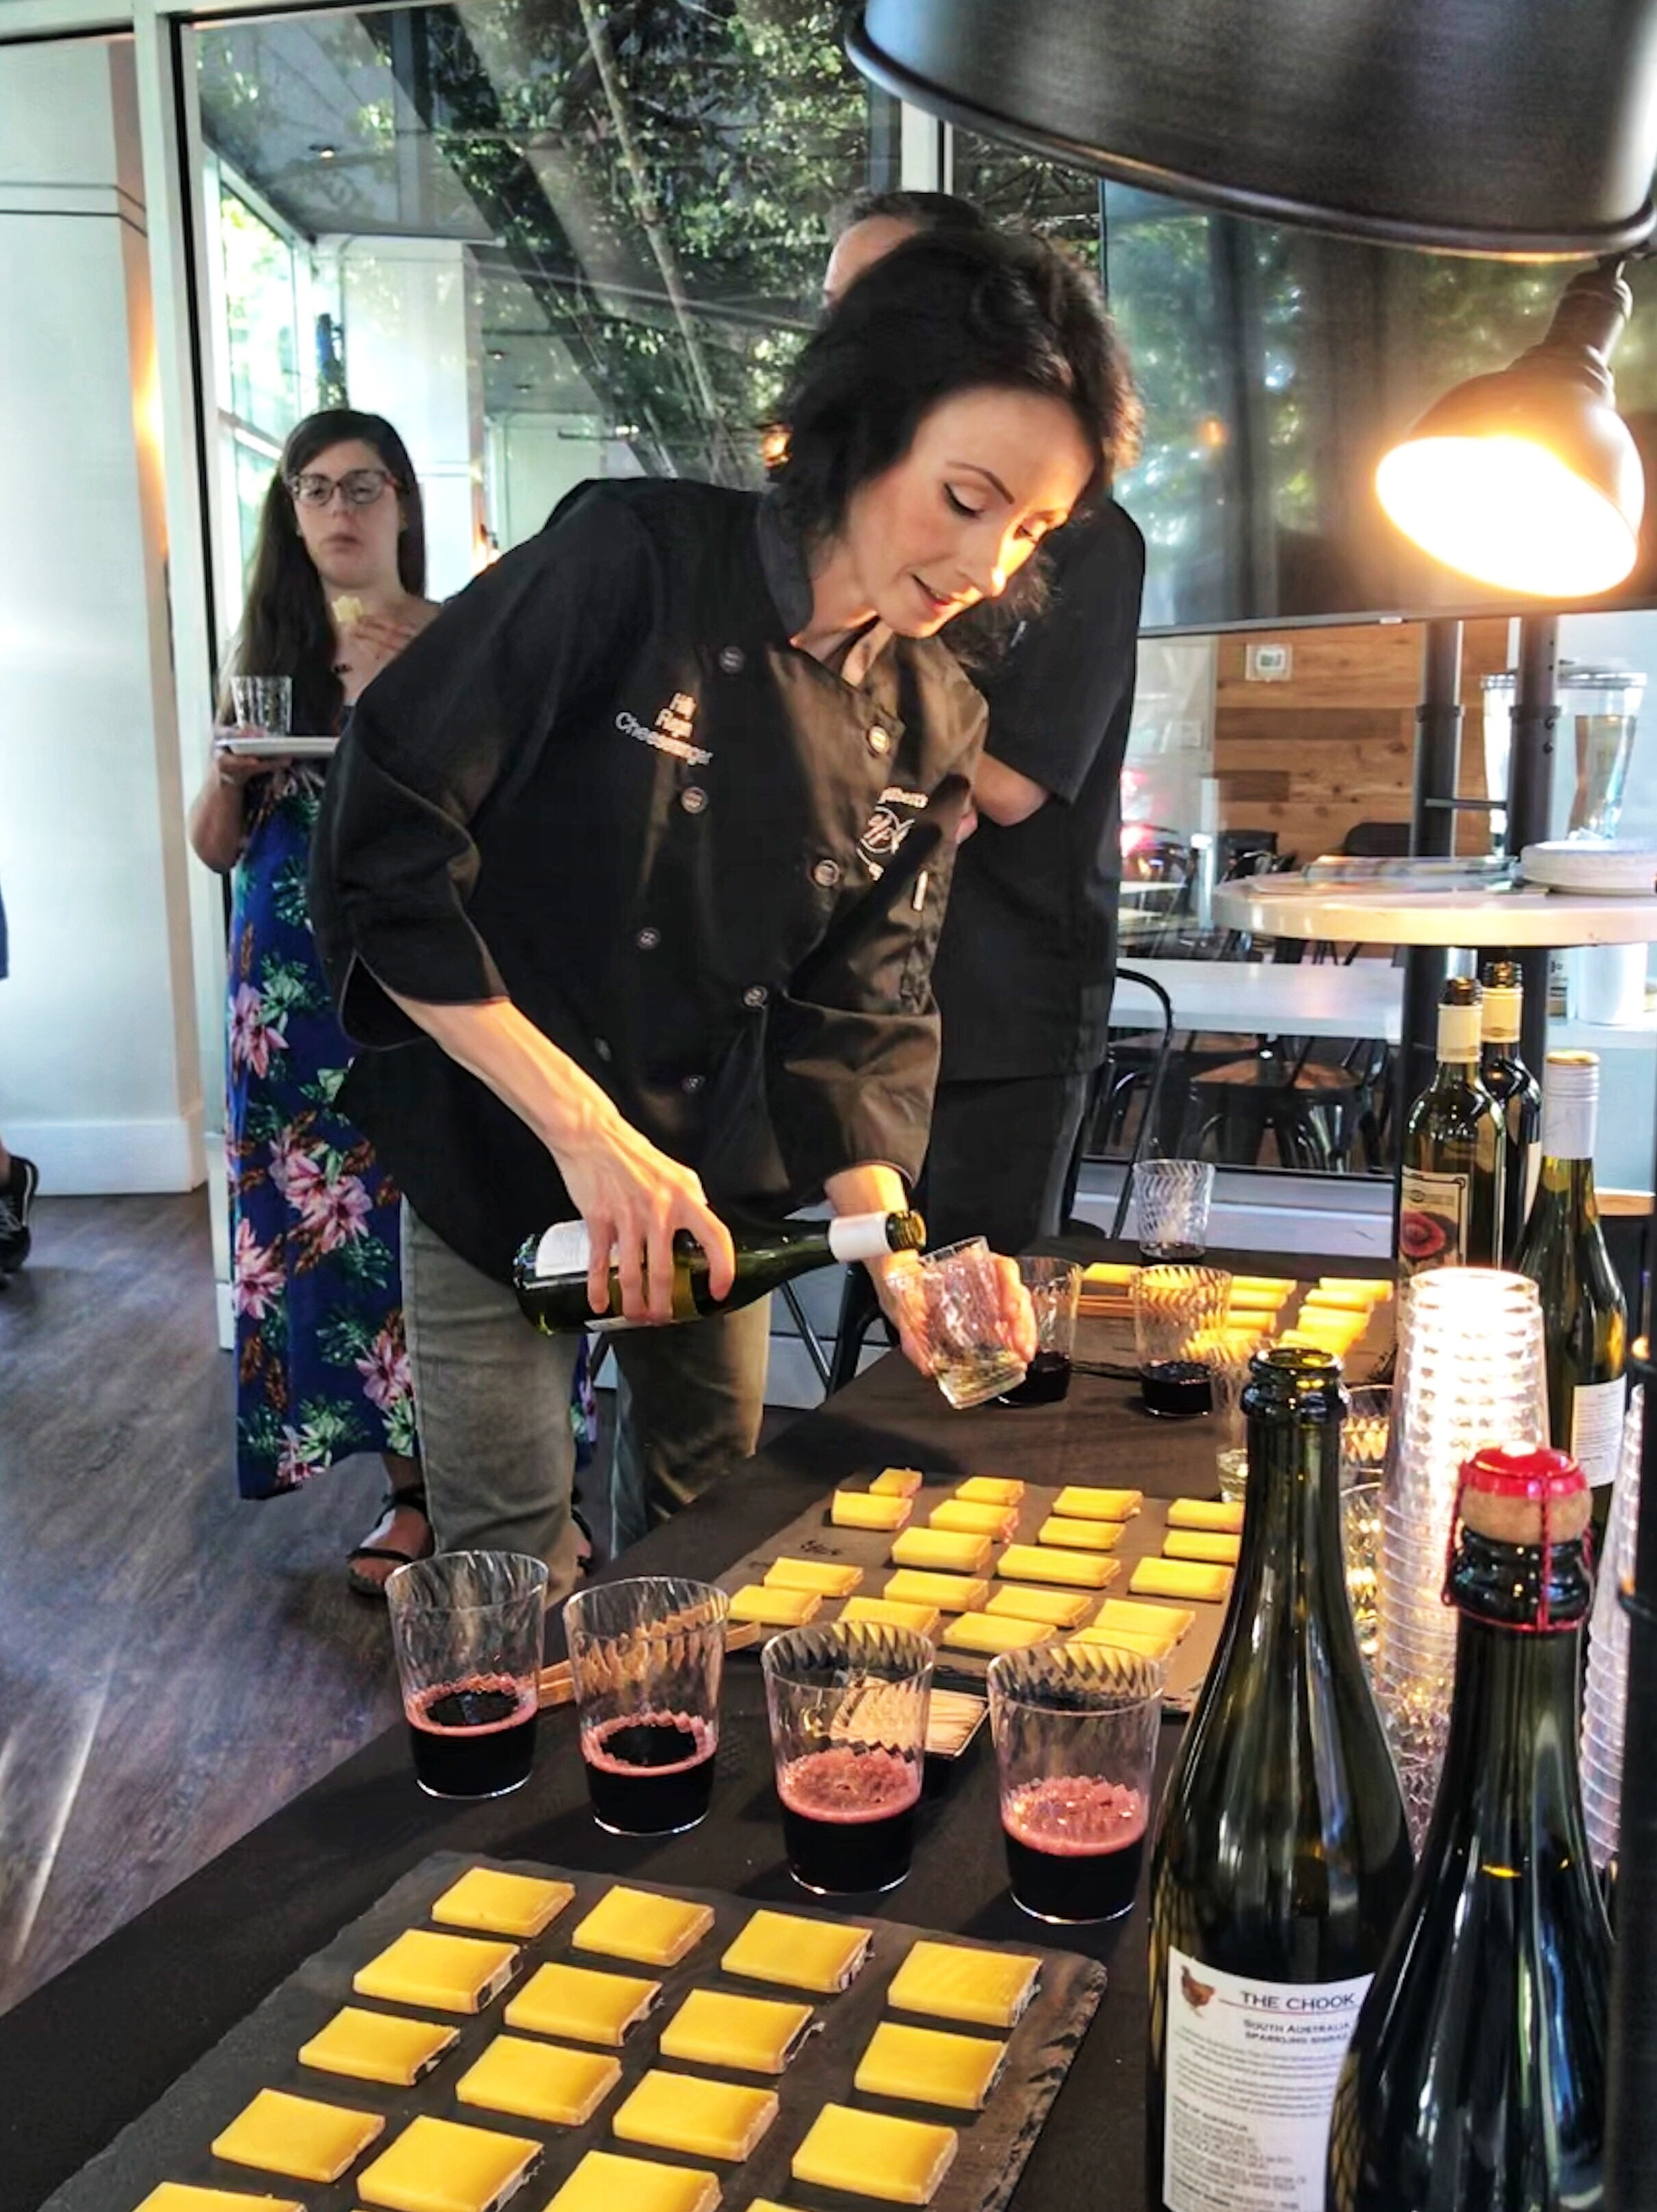 FullSizeRender - Welcoming Fall With Wine + Cheese at Cedar and Spokes